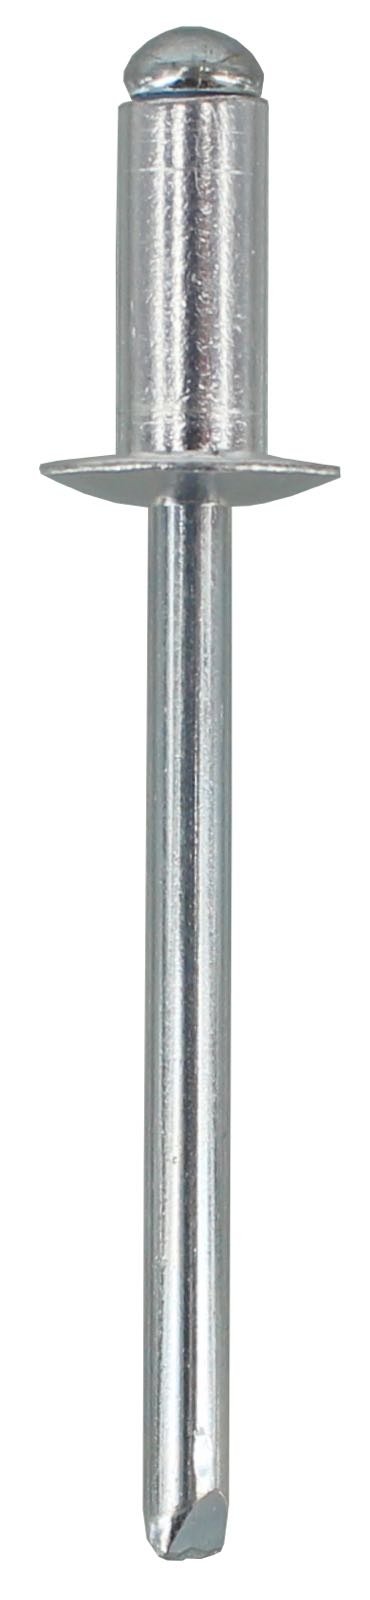 POP RIVET AS6-4 - ALUMINIUM RIVET, STEEL STEM  (QTY 50)